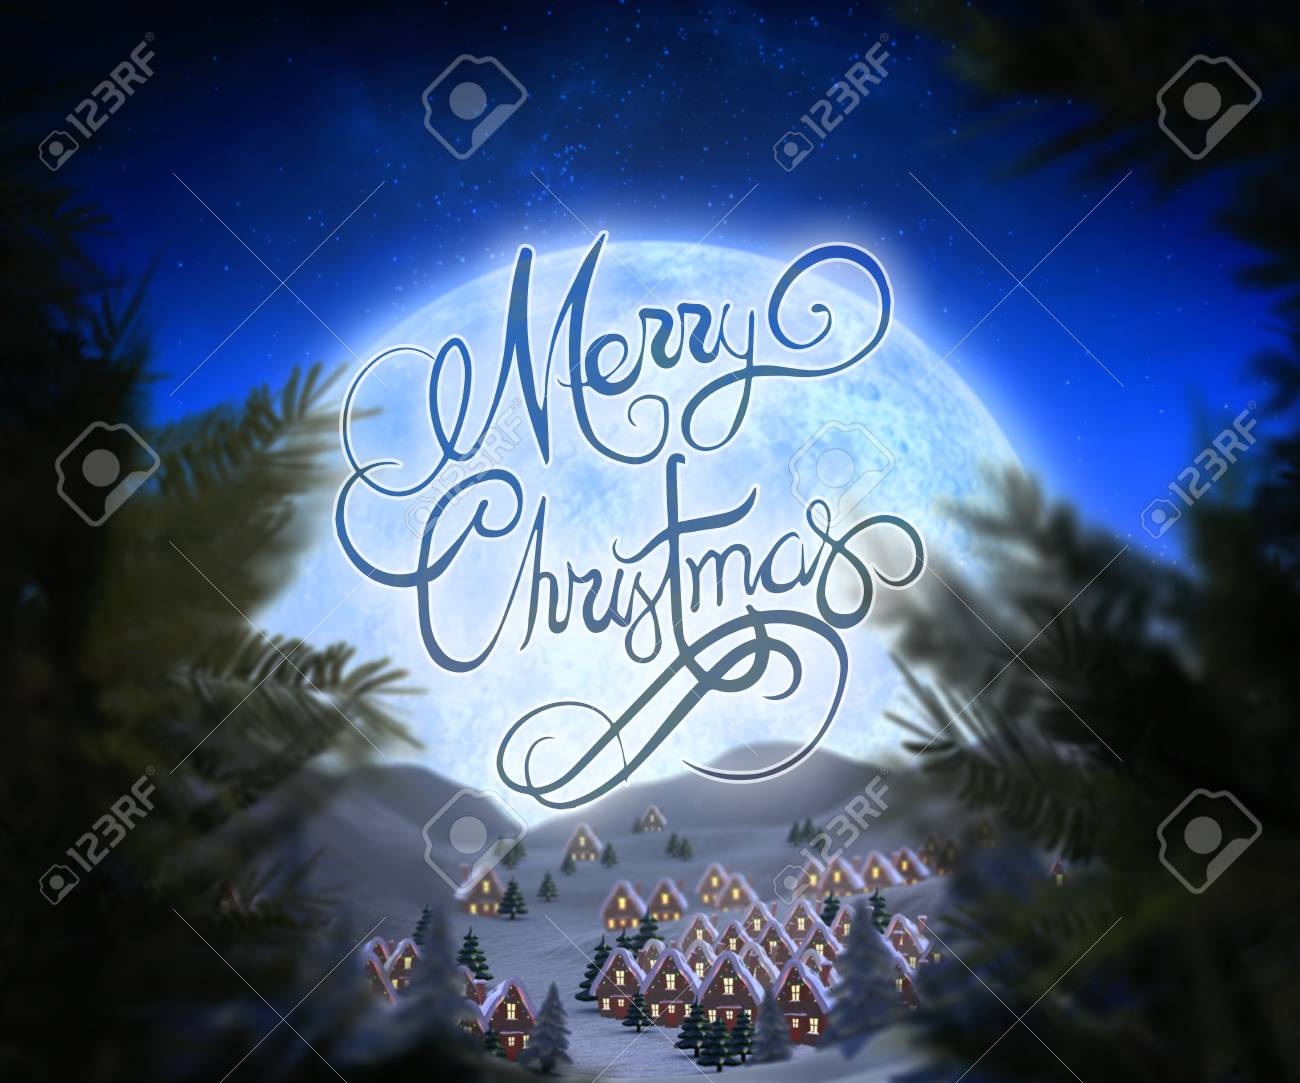 Merry Christmas Message Against Christmas Village Under Full Moon ...